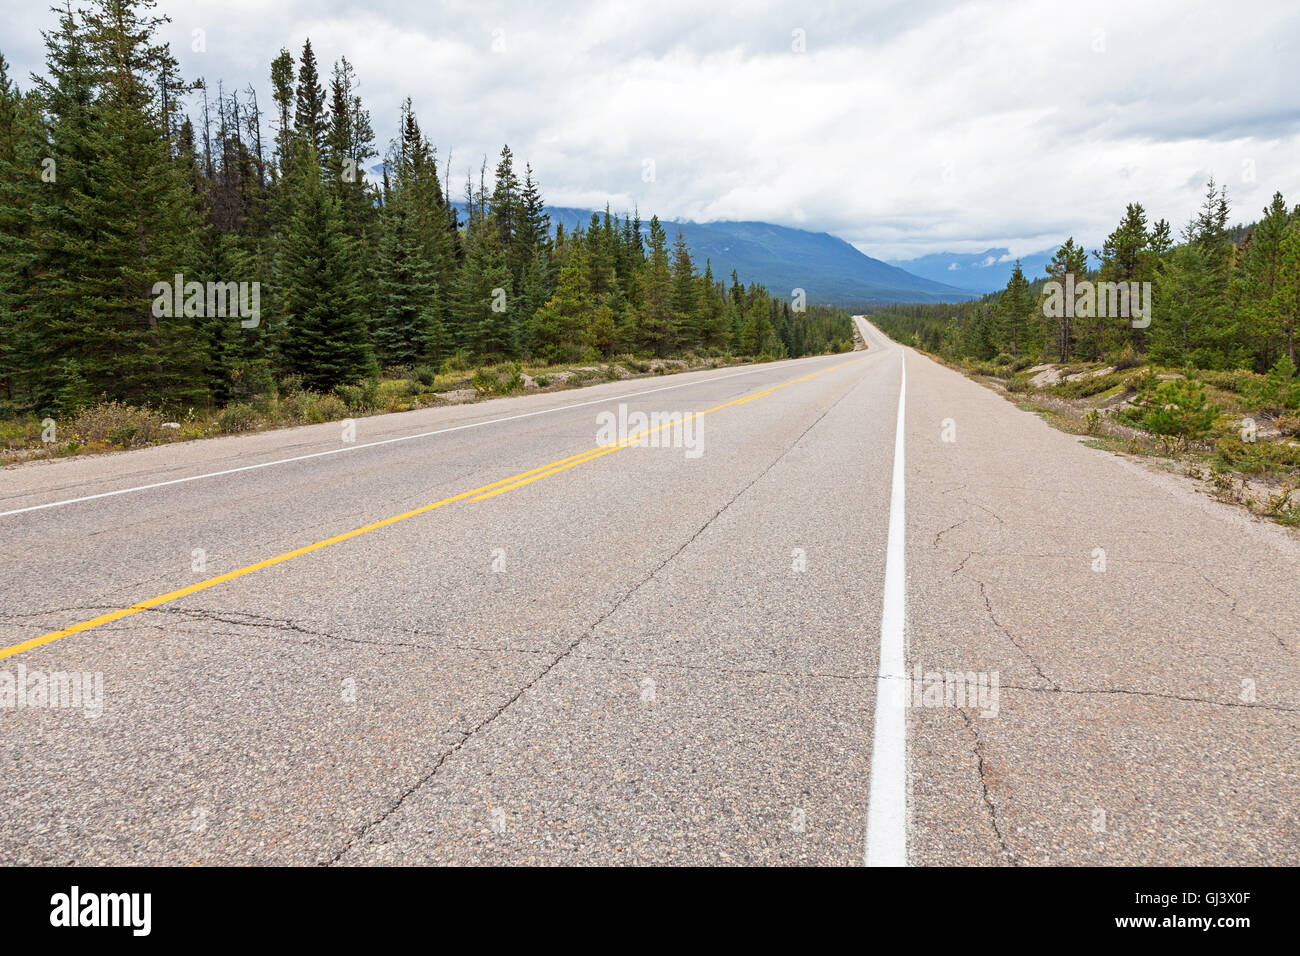 A deserted road Highway 93 also called the Icefields Parkway between Lake Louise and Jasper Alberta Canada - Stock Image